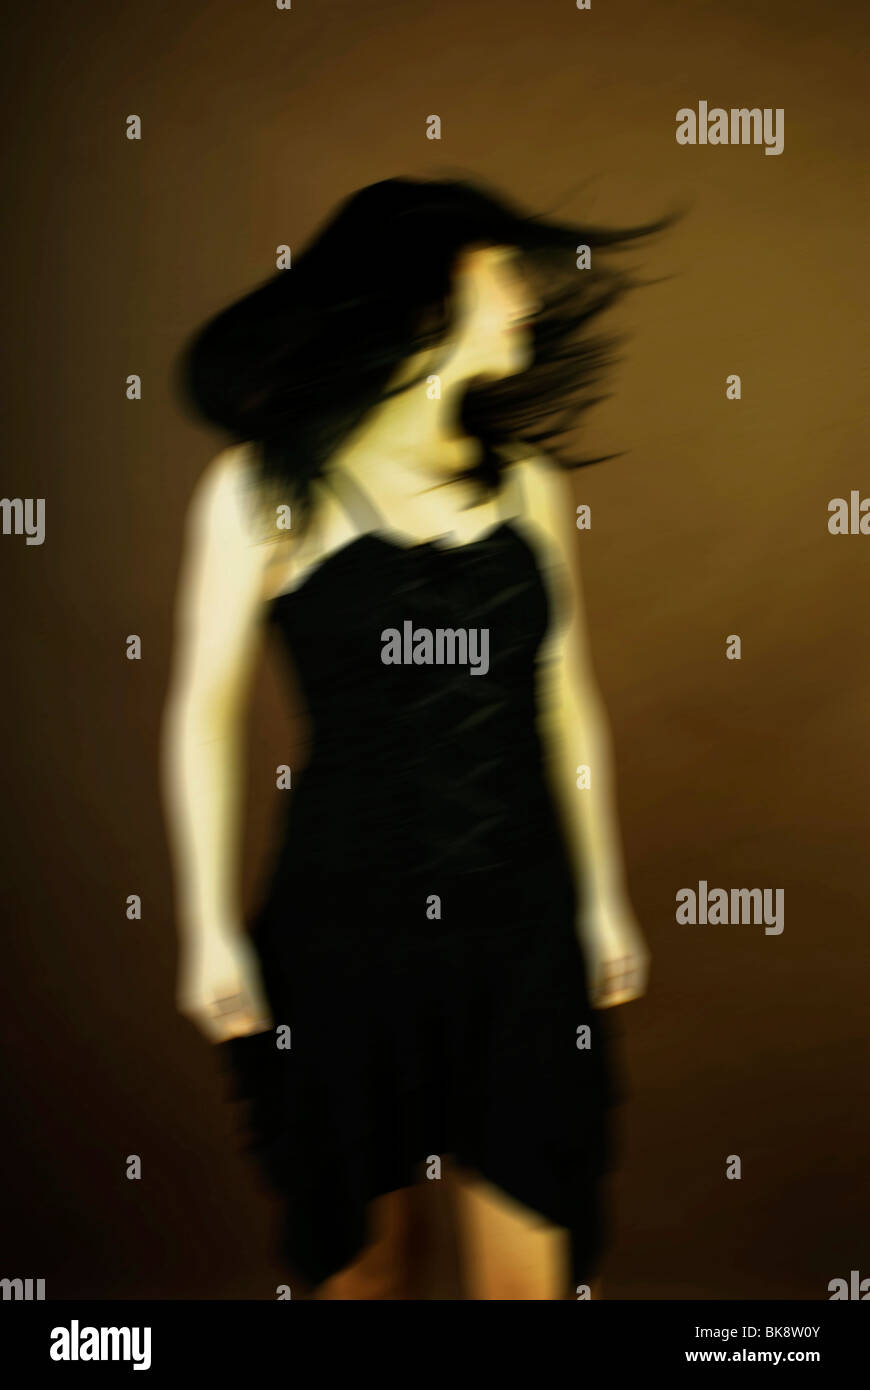 Dark-haired woman tossing her hair, movement - Stock Image